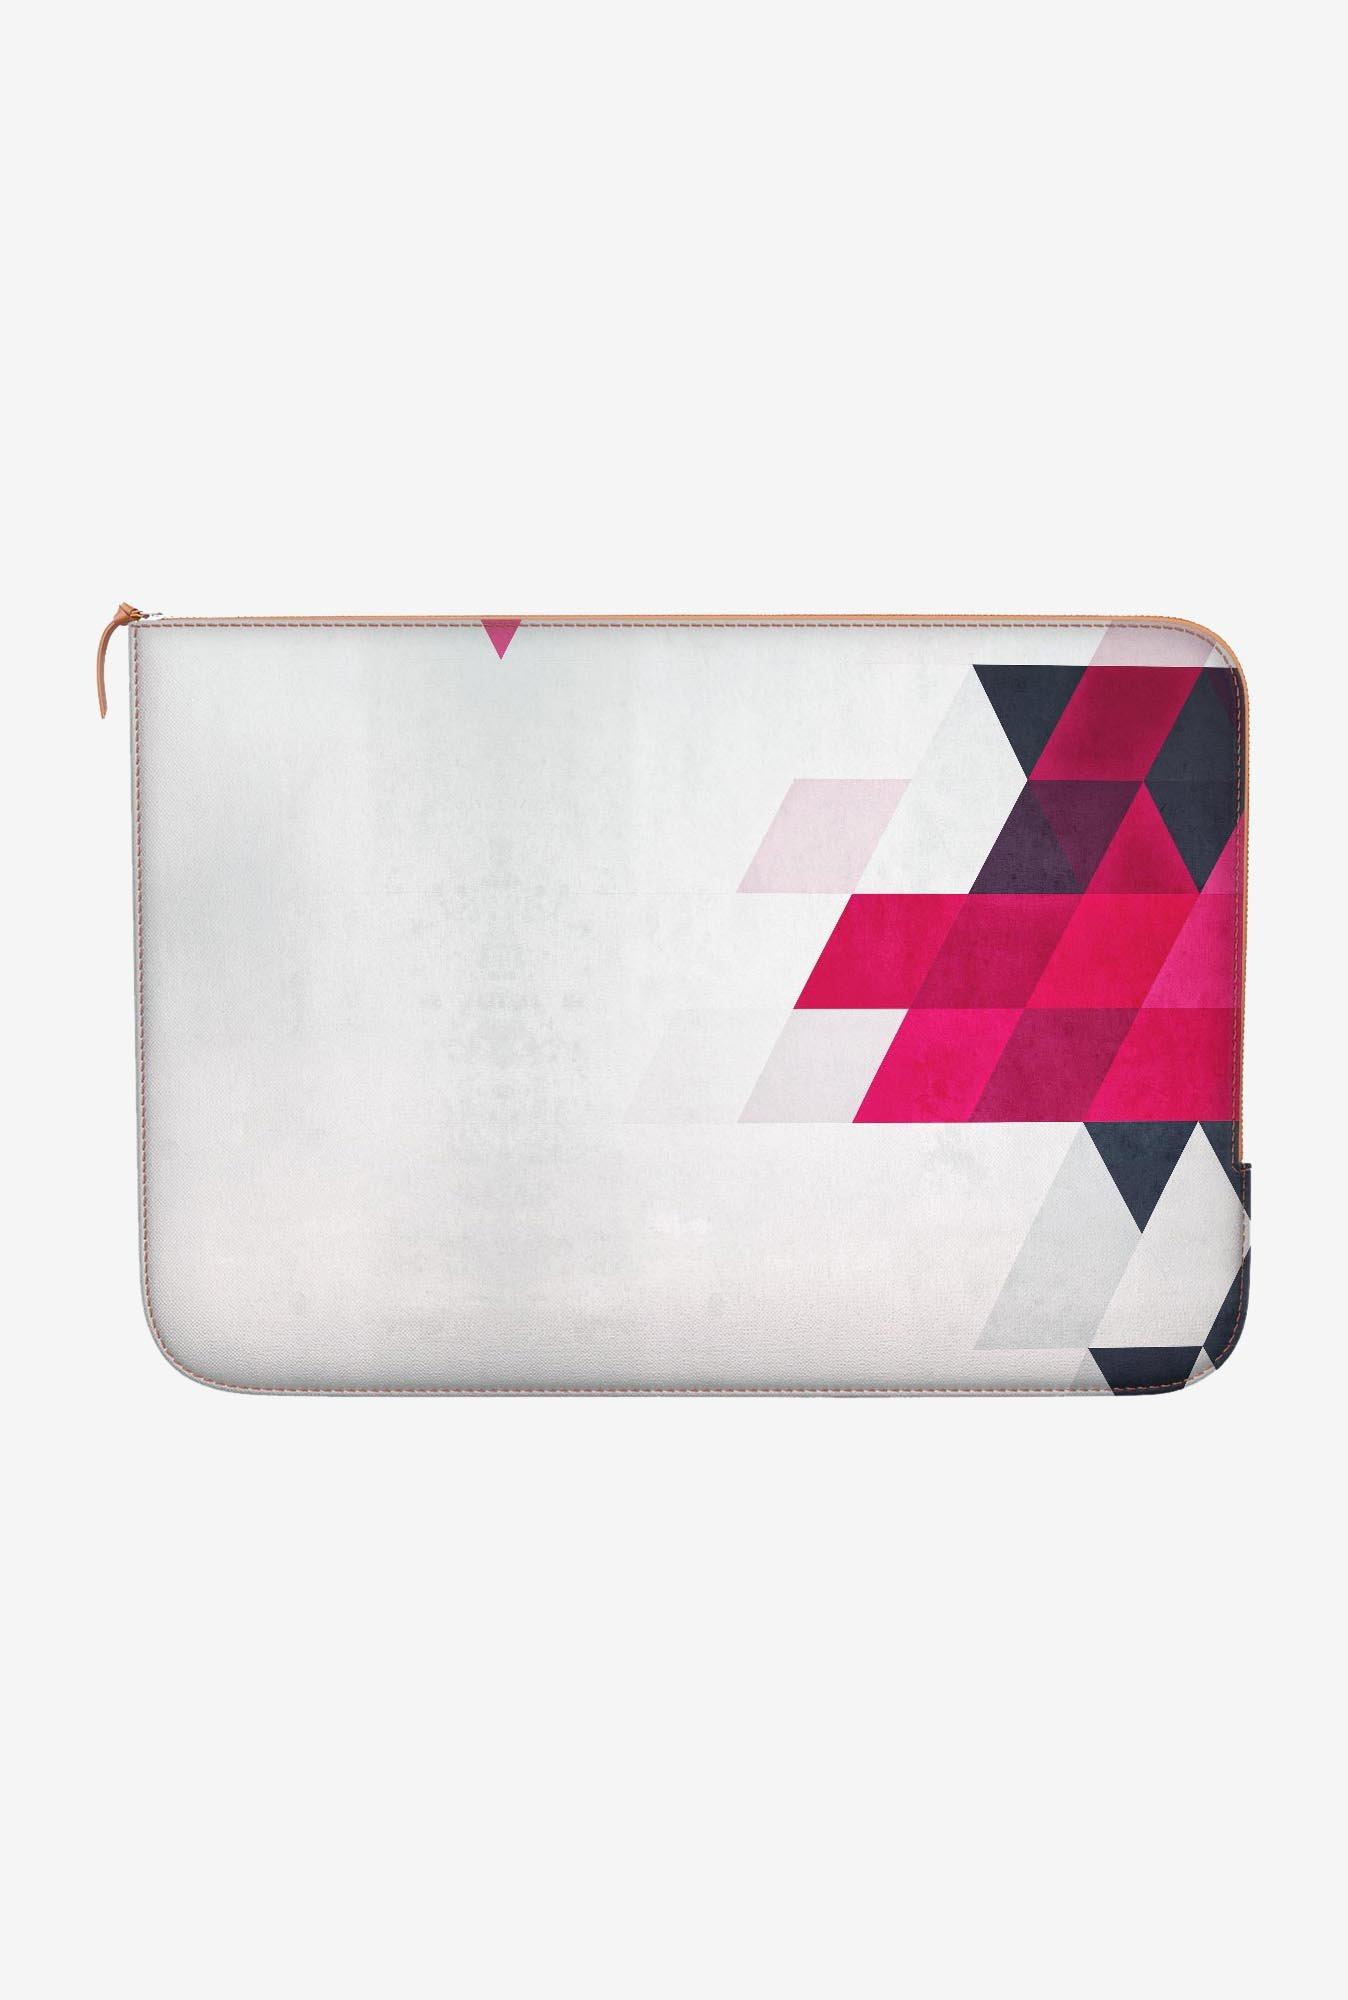 "DailyObjects Minimylysse Macbook Air 11"" Zippered Sleeve"